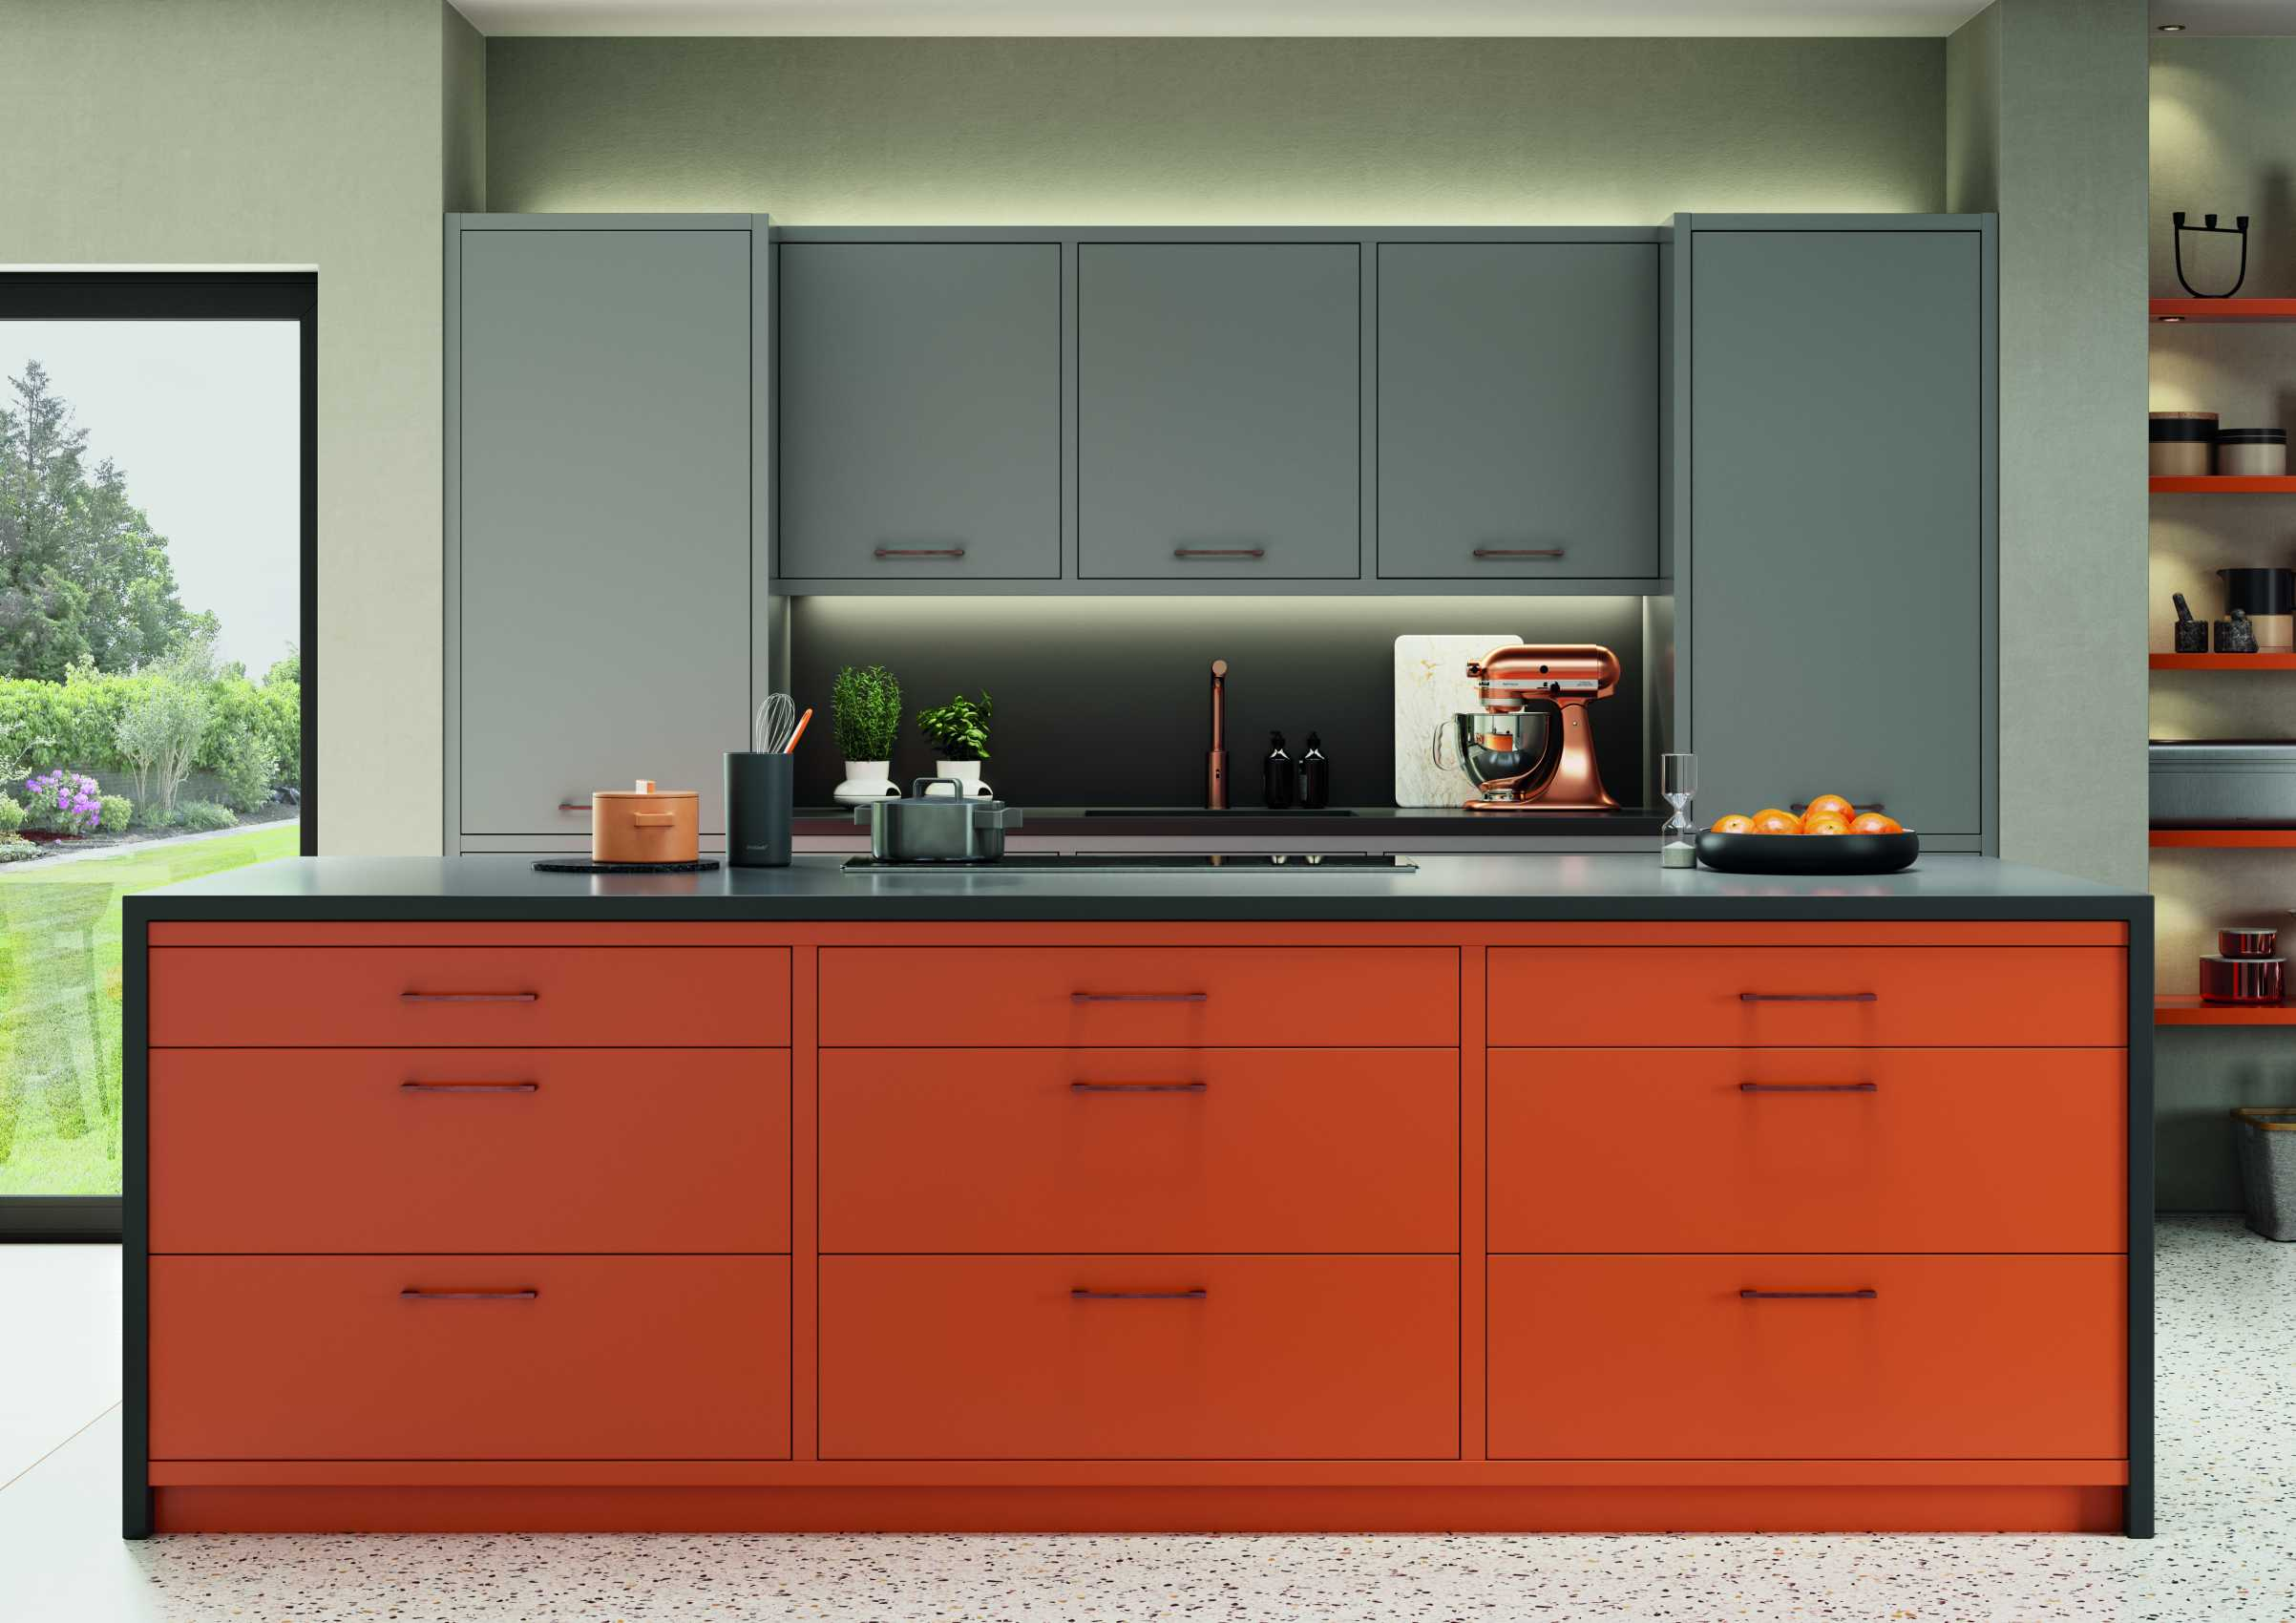 matte orange and graphite modern kitchen island front view